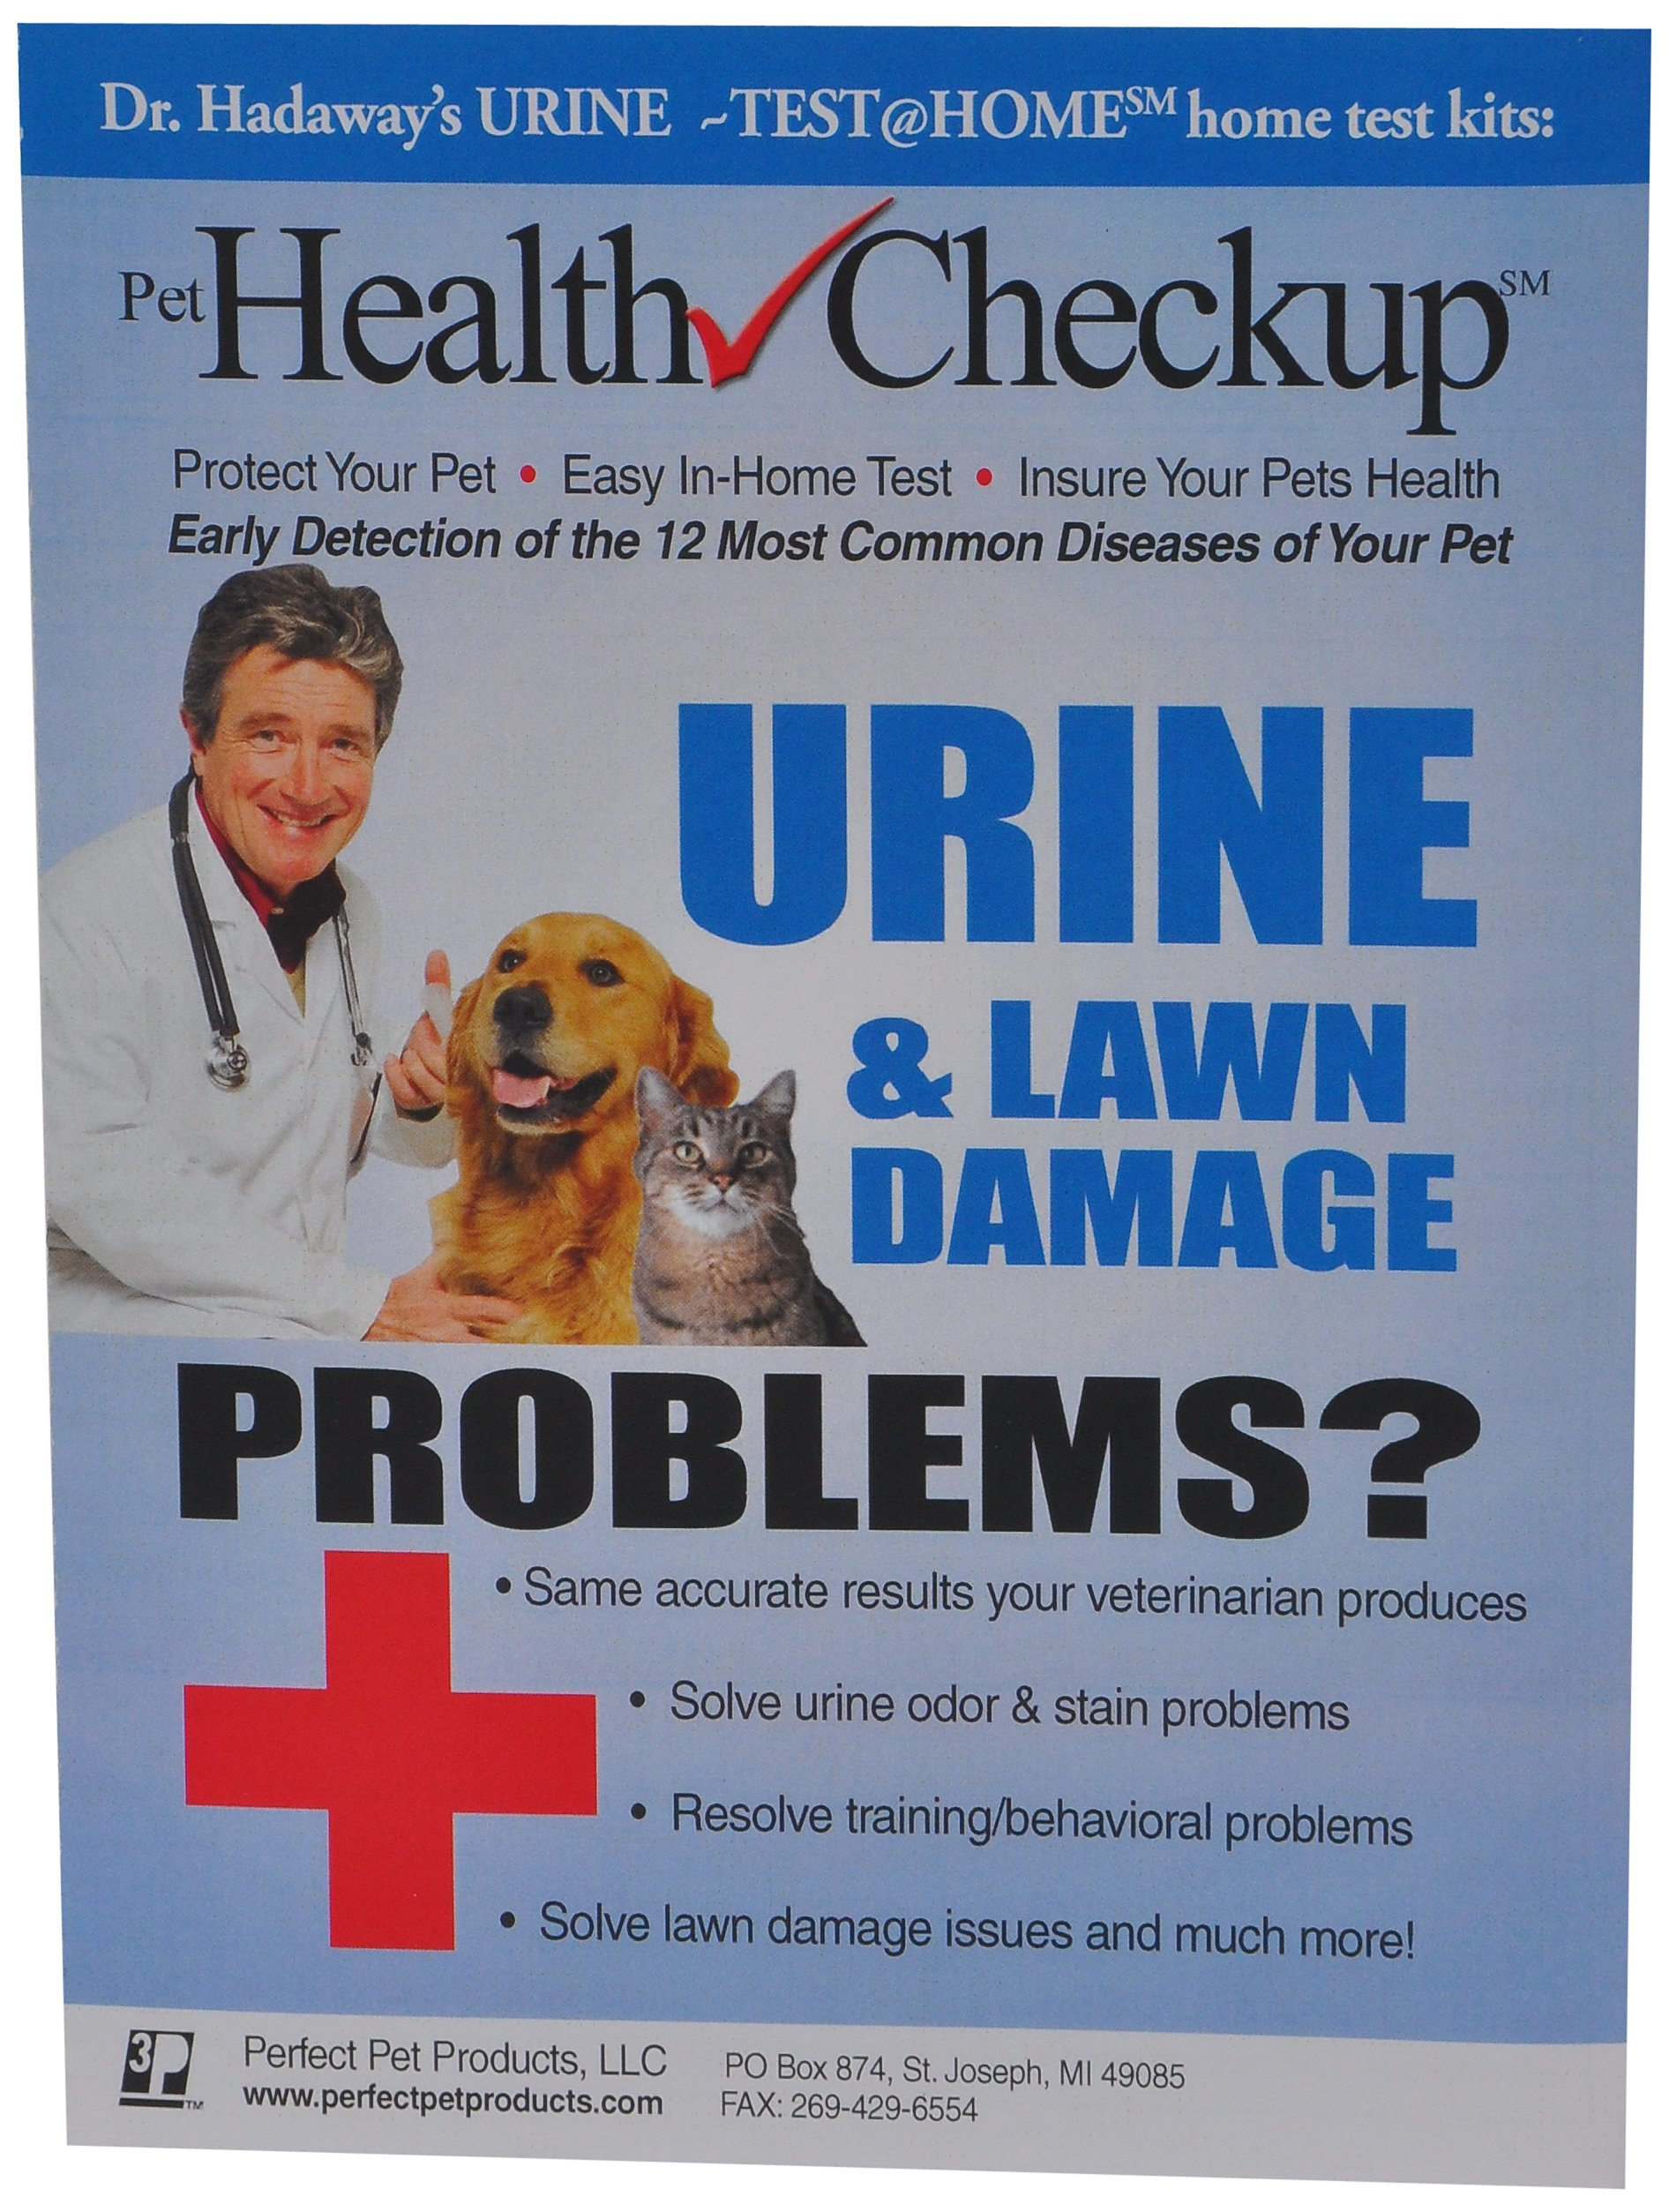 Pet Health Checkup AT HOME TEST Kit for urine infections, diabetes, pet disease, urinating in home or other training problems